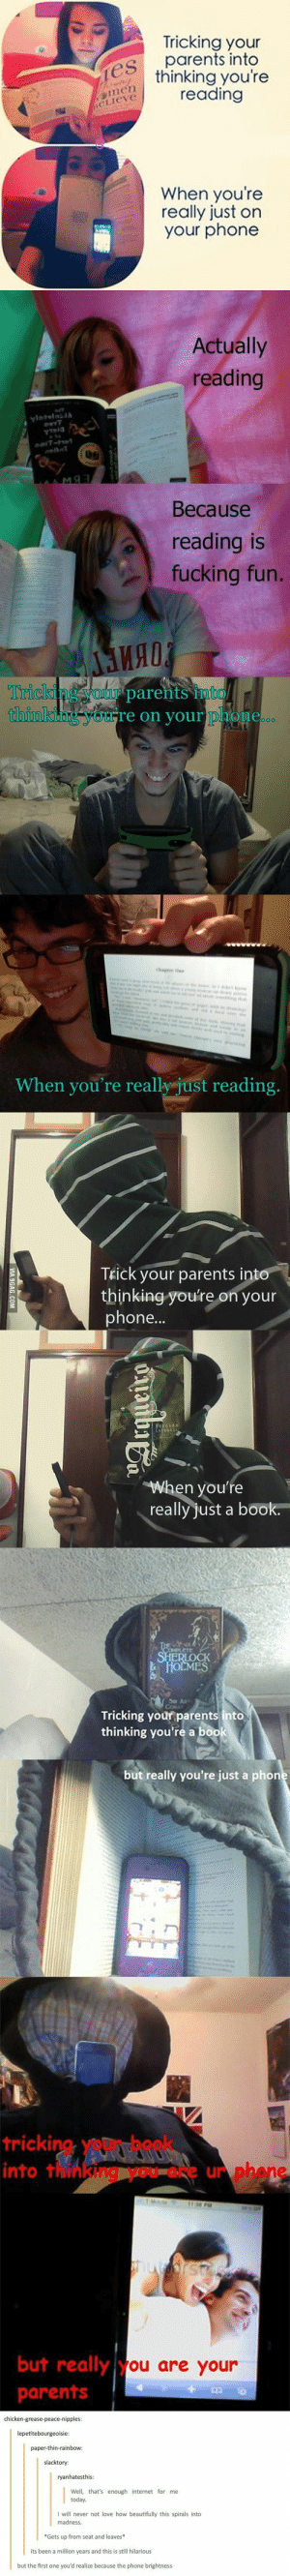 I love how this spirals into the madness that is Tumblr- true story bahahaha: Tricking your  parents into  hinking you're  reading  When youre  really just on  your phone  Actually  ding  Because  reading is  fucking fun.  ия!  Trick  e on your  When yoù're really just reading,  TEick your parents  thinking you're on your  phone...  n you  really just a book.  Tricking your parents into  thinking you're a  but really you're just a  trickin  into t  ur  but really  parentsO  ou are your I love how this spirals into the madness that is Tumblr- true story bahahaha